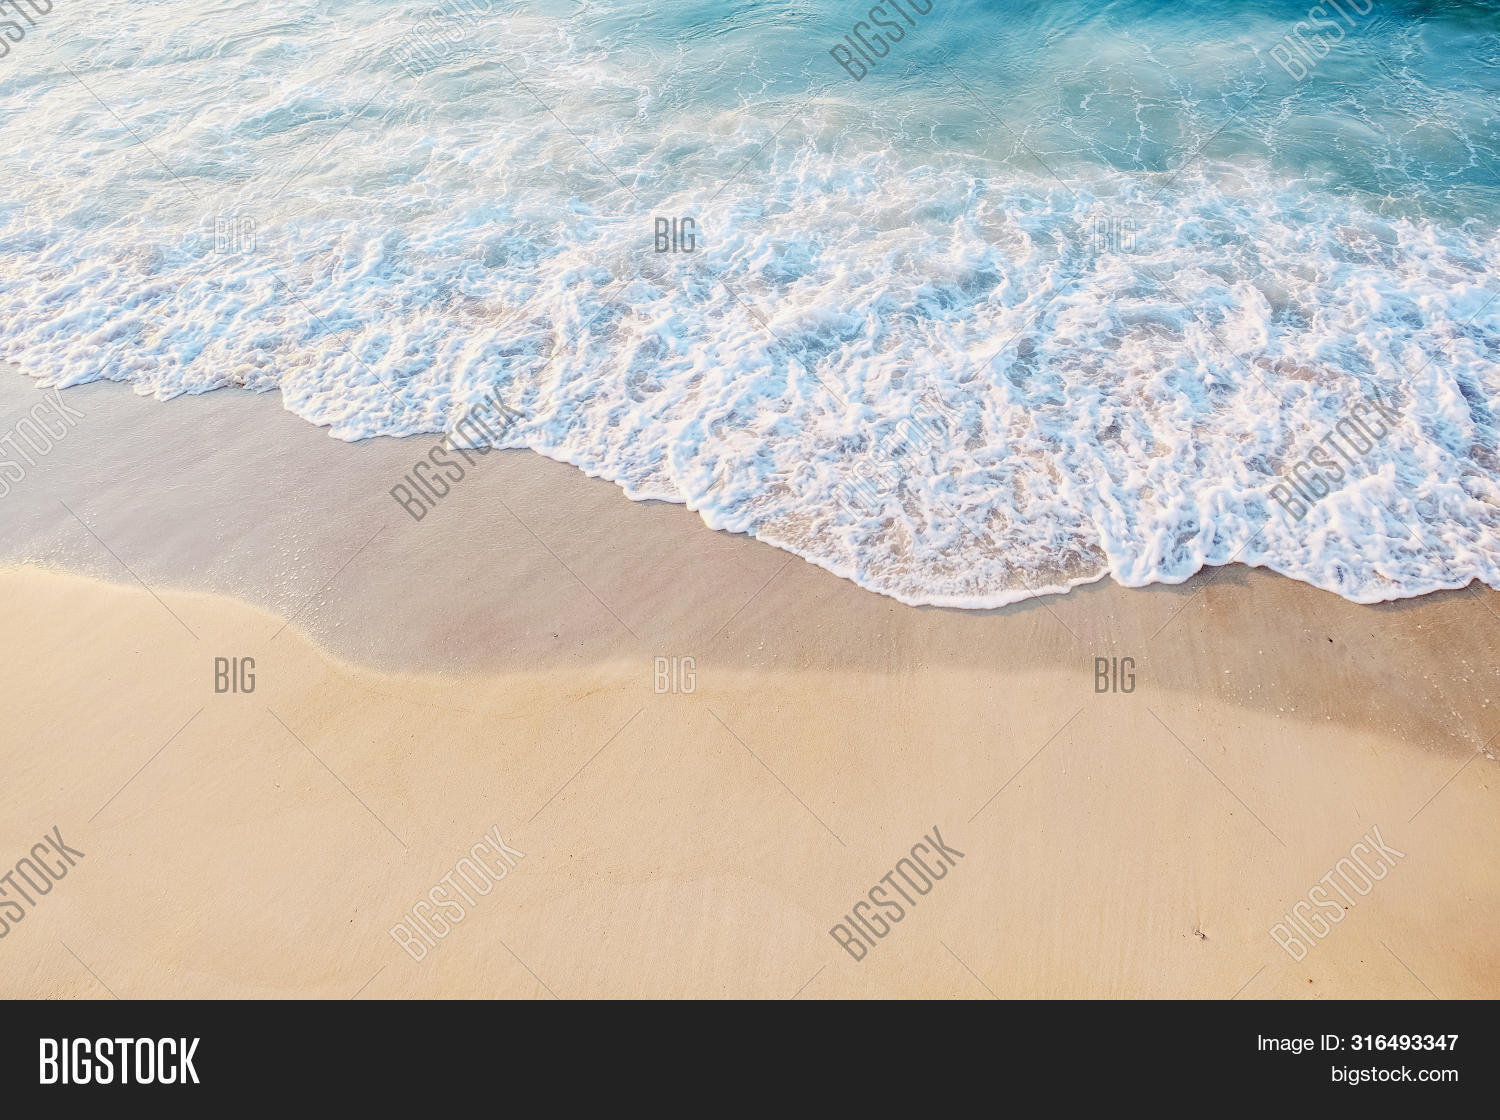 Sea Shore Close-up. Beautiful Blue Water With Foam Near The Sandy Shore. Place For Text. The Concept